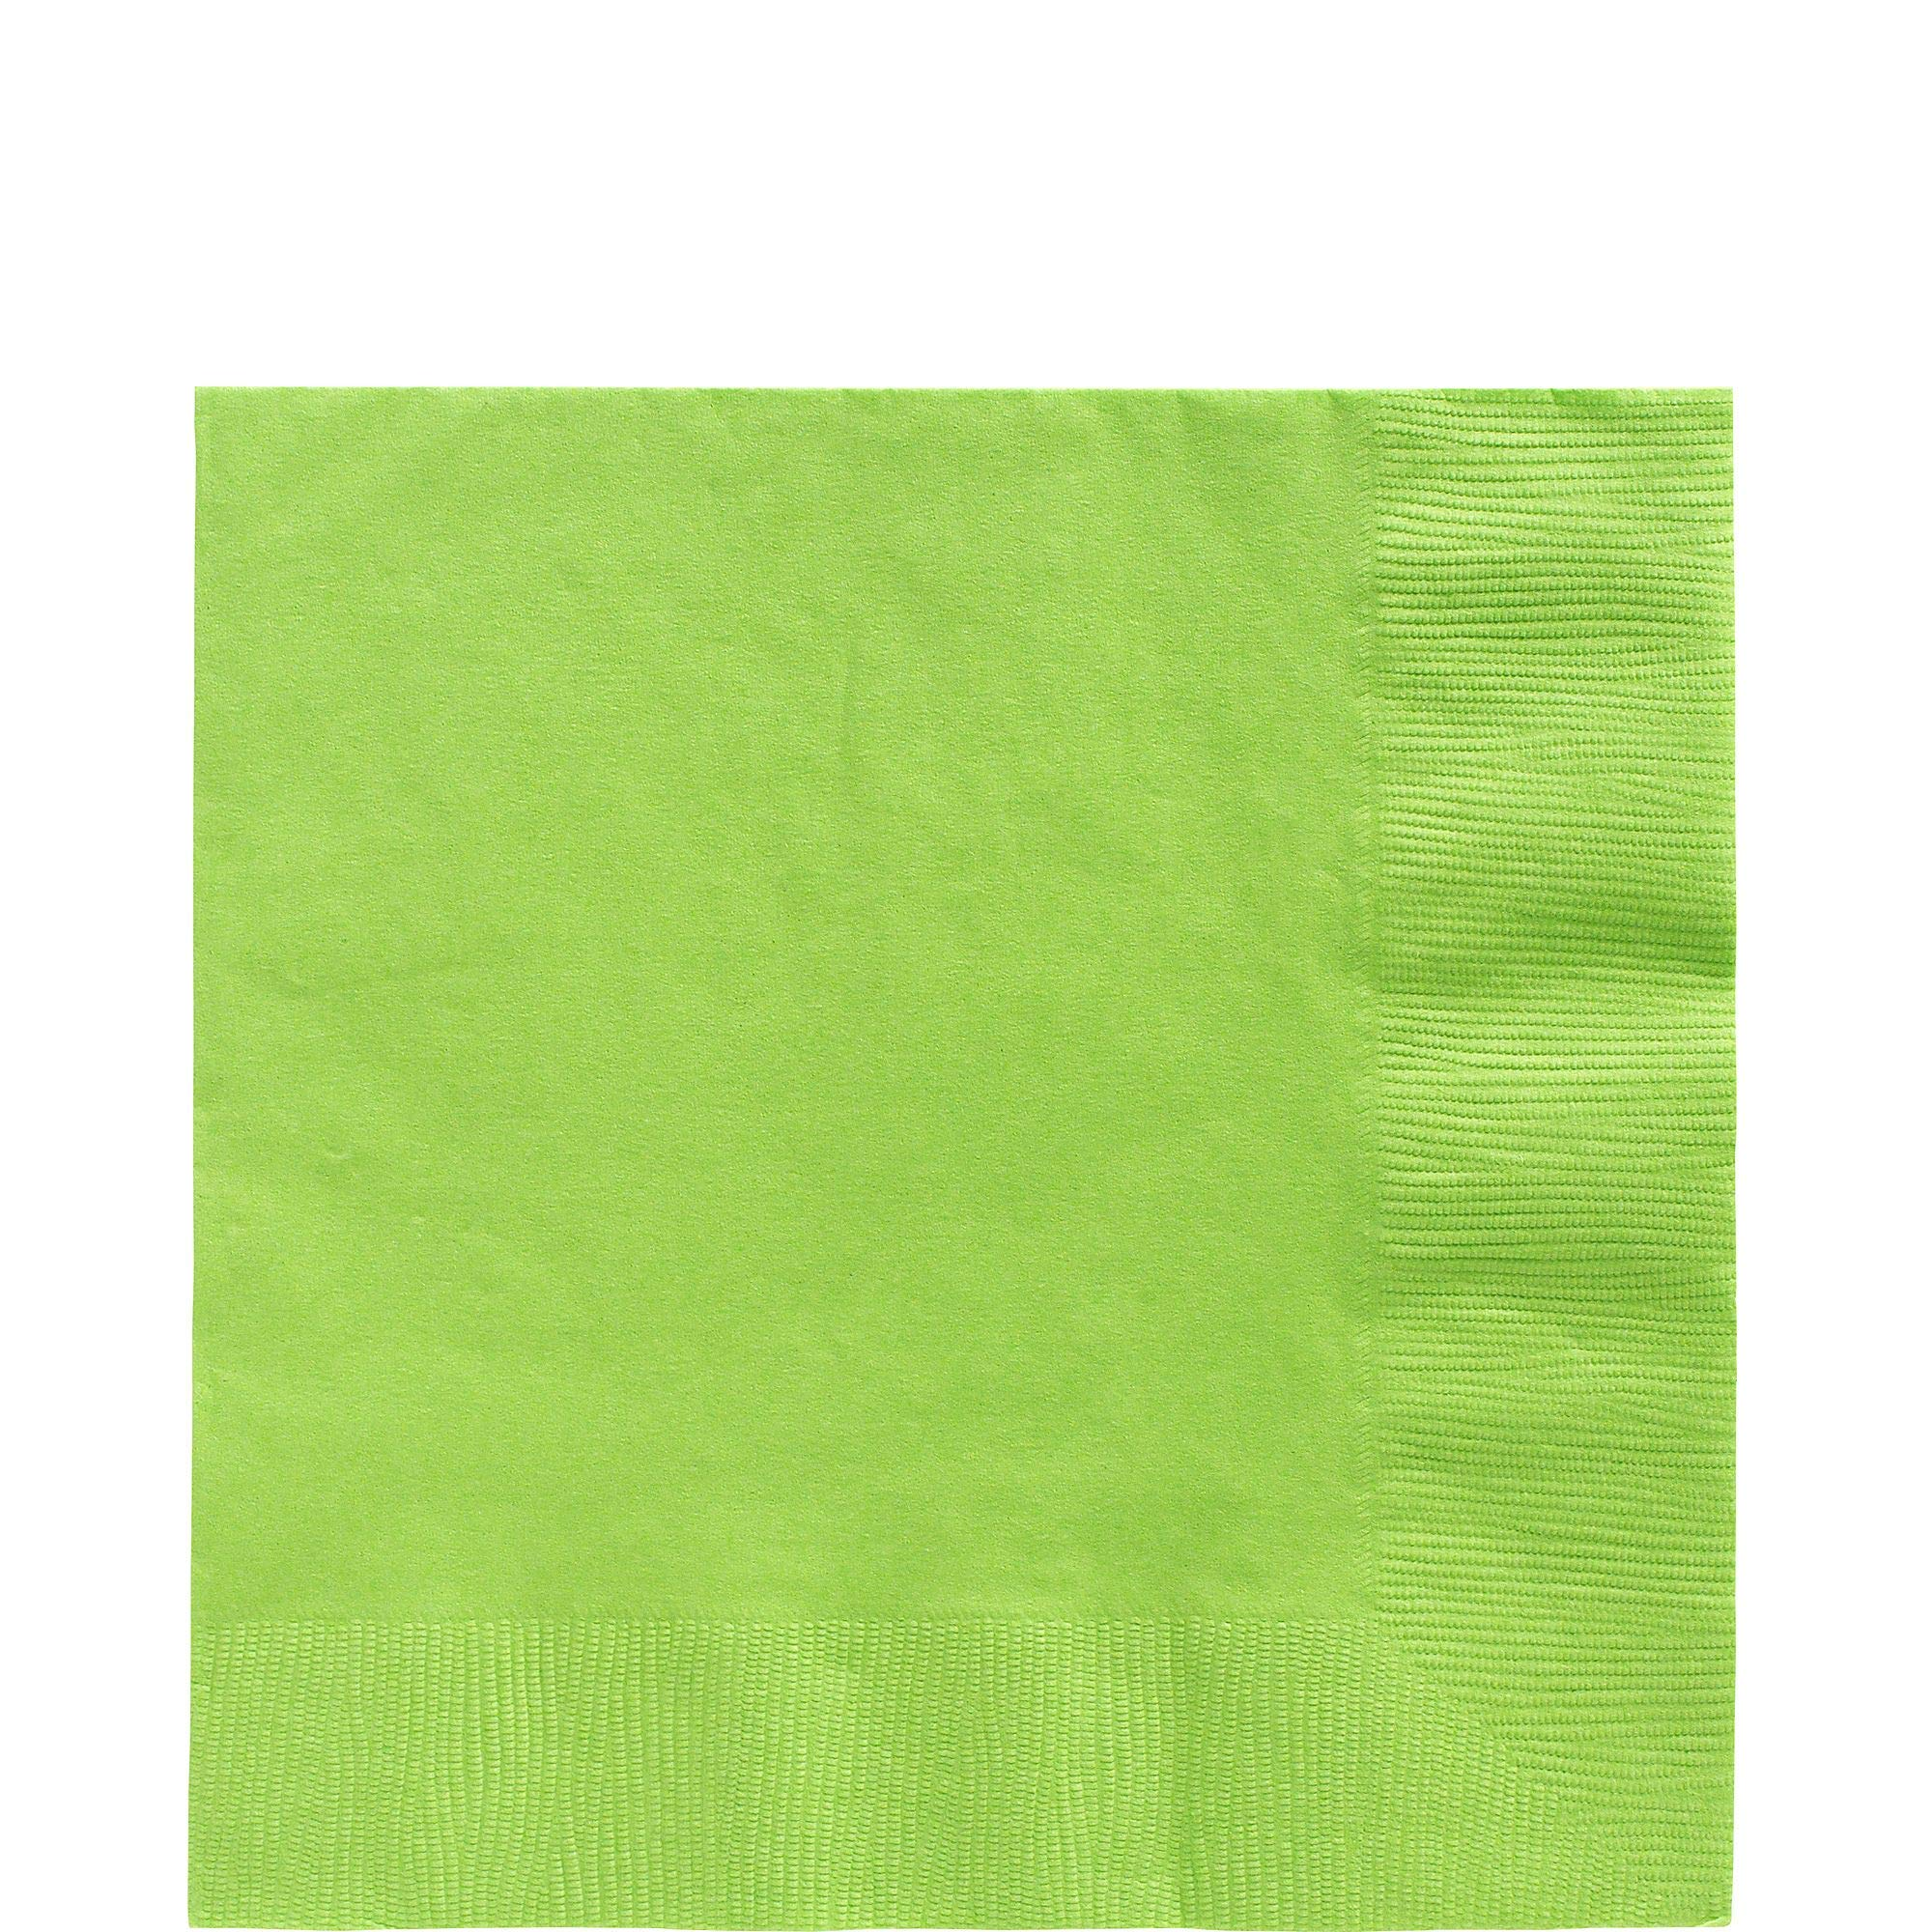 Kiwi Green Luncheon Paper Napkins Big Party Pack, 125 Ct. by amscan